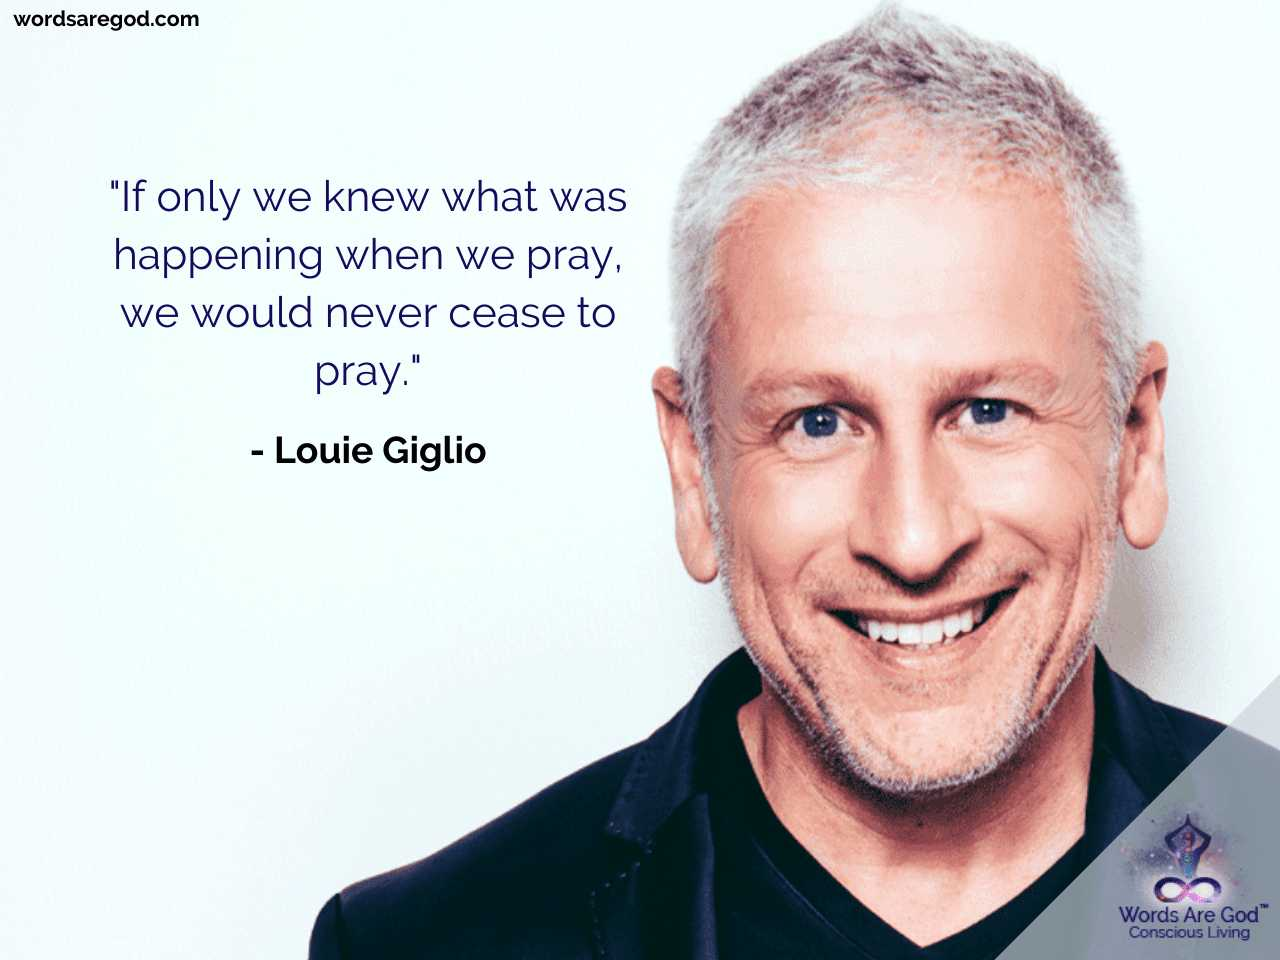 Louie Giglio Inspirational Quote by Louie Giglio